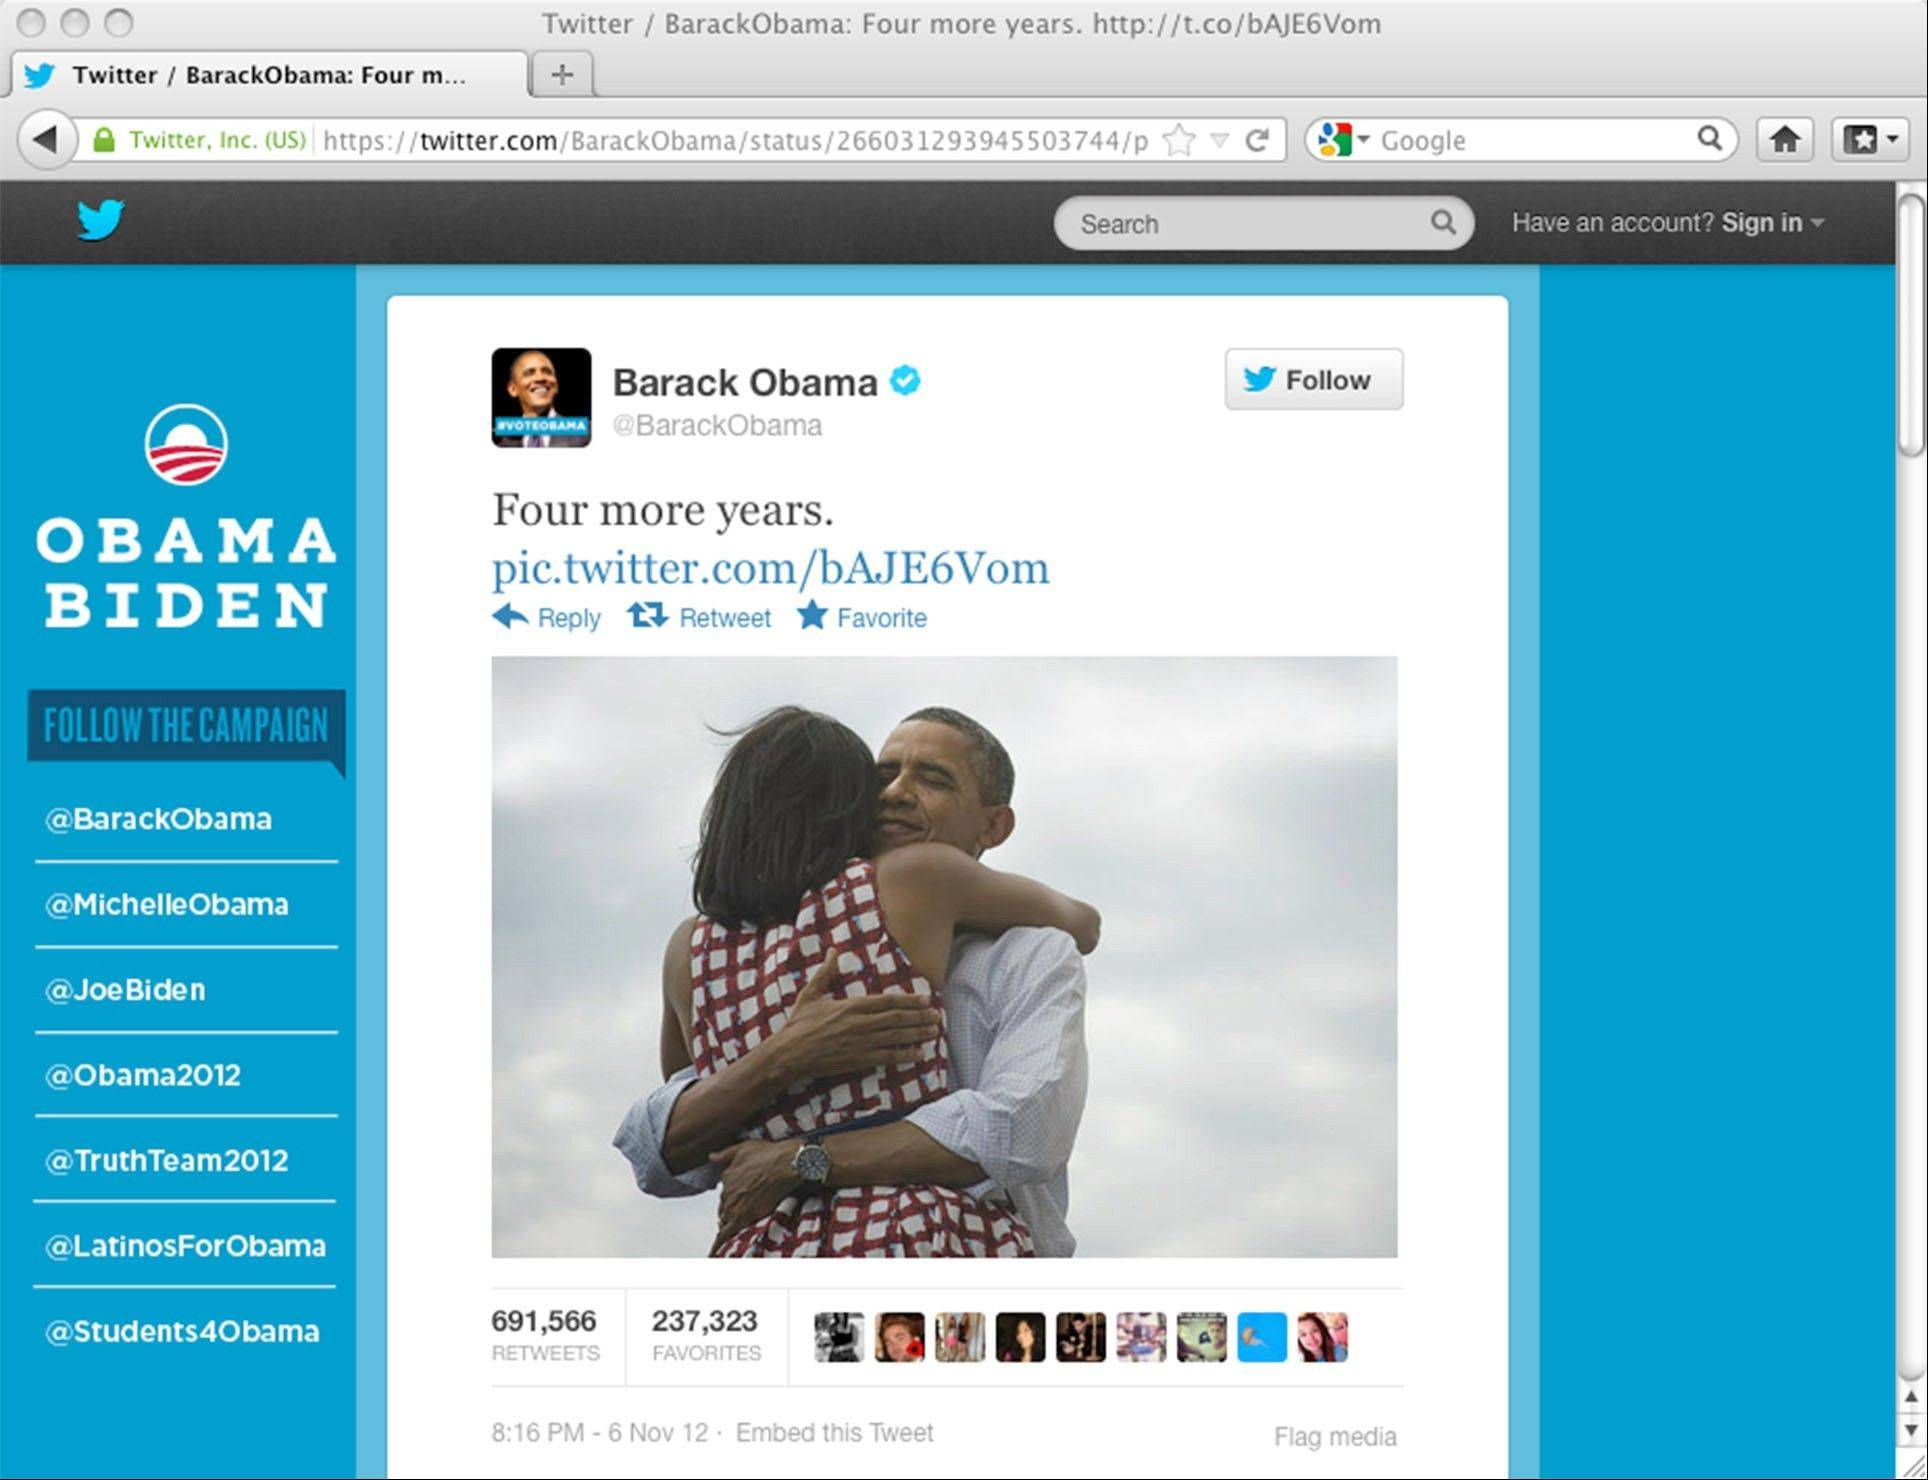 "President Barack Obama's Twitter posting, which read ""Four more years"" and featured a picture of him hugging his wife, Michelle, became the most retweeted post on Twitter. Unlike many images of political marriage in which the man lays claim to his wife through a symbolically possessive gesture, the embrace between these two people seems mutual and symbolic of a healthy society."